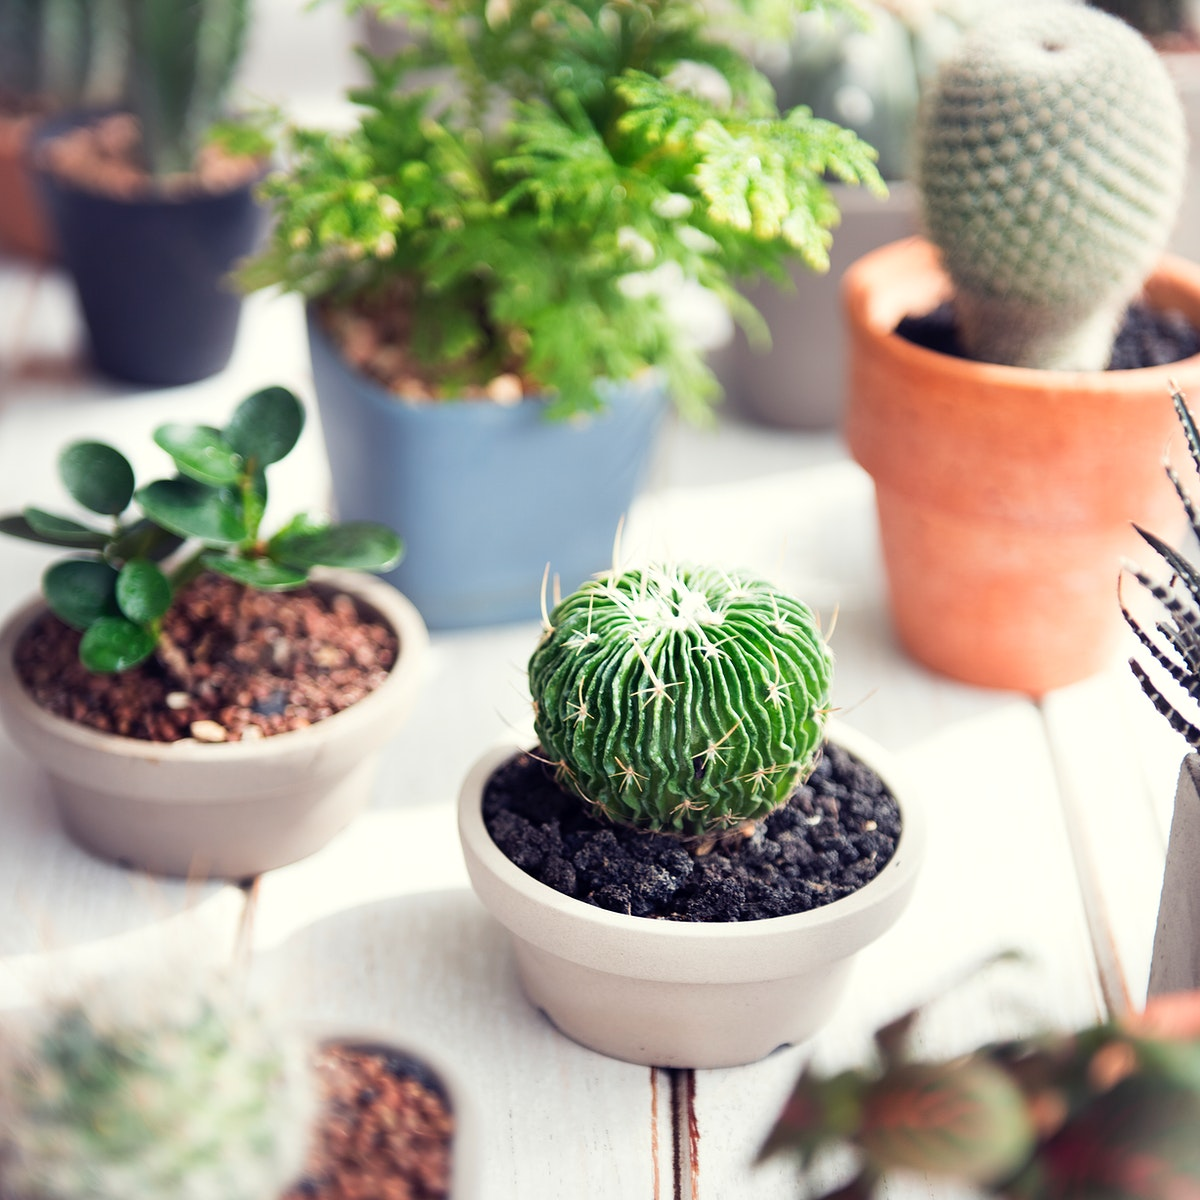 Closeup of houseplants on wooden table